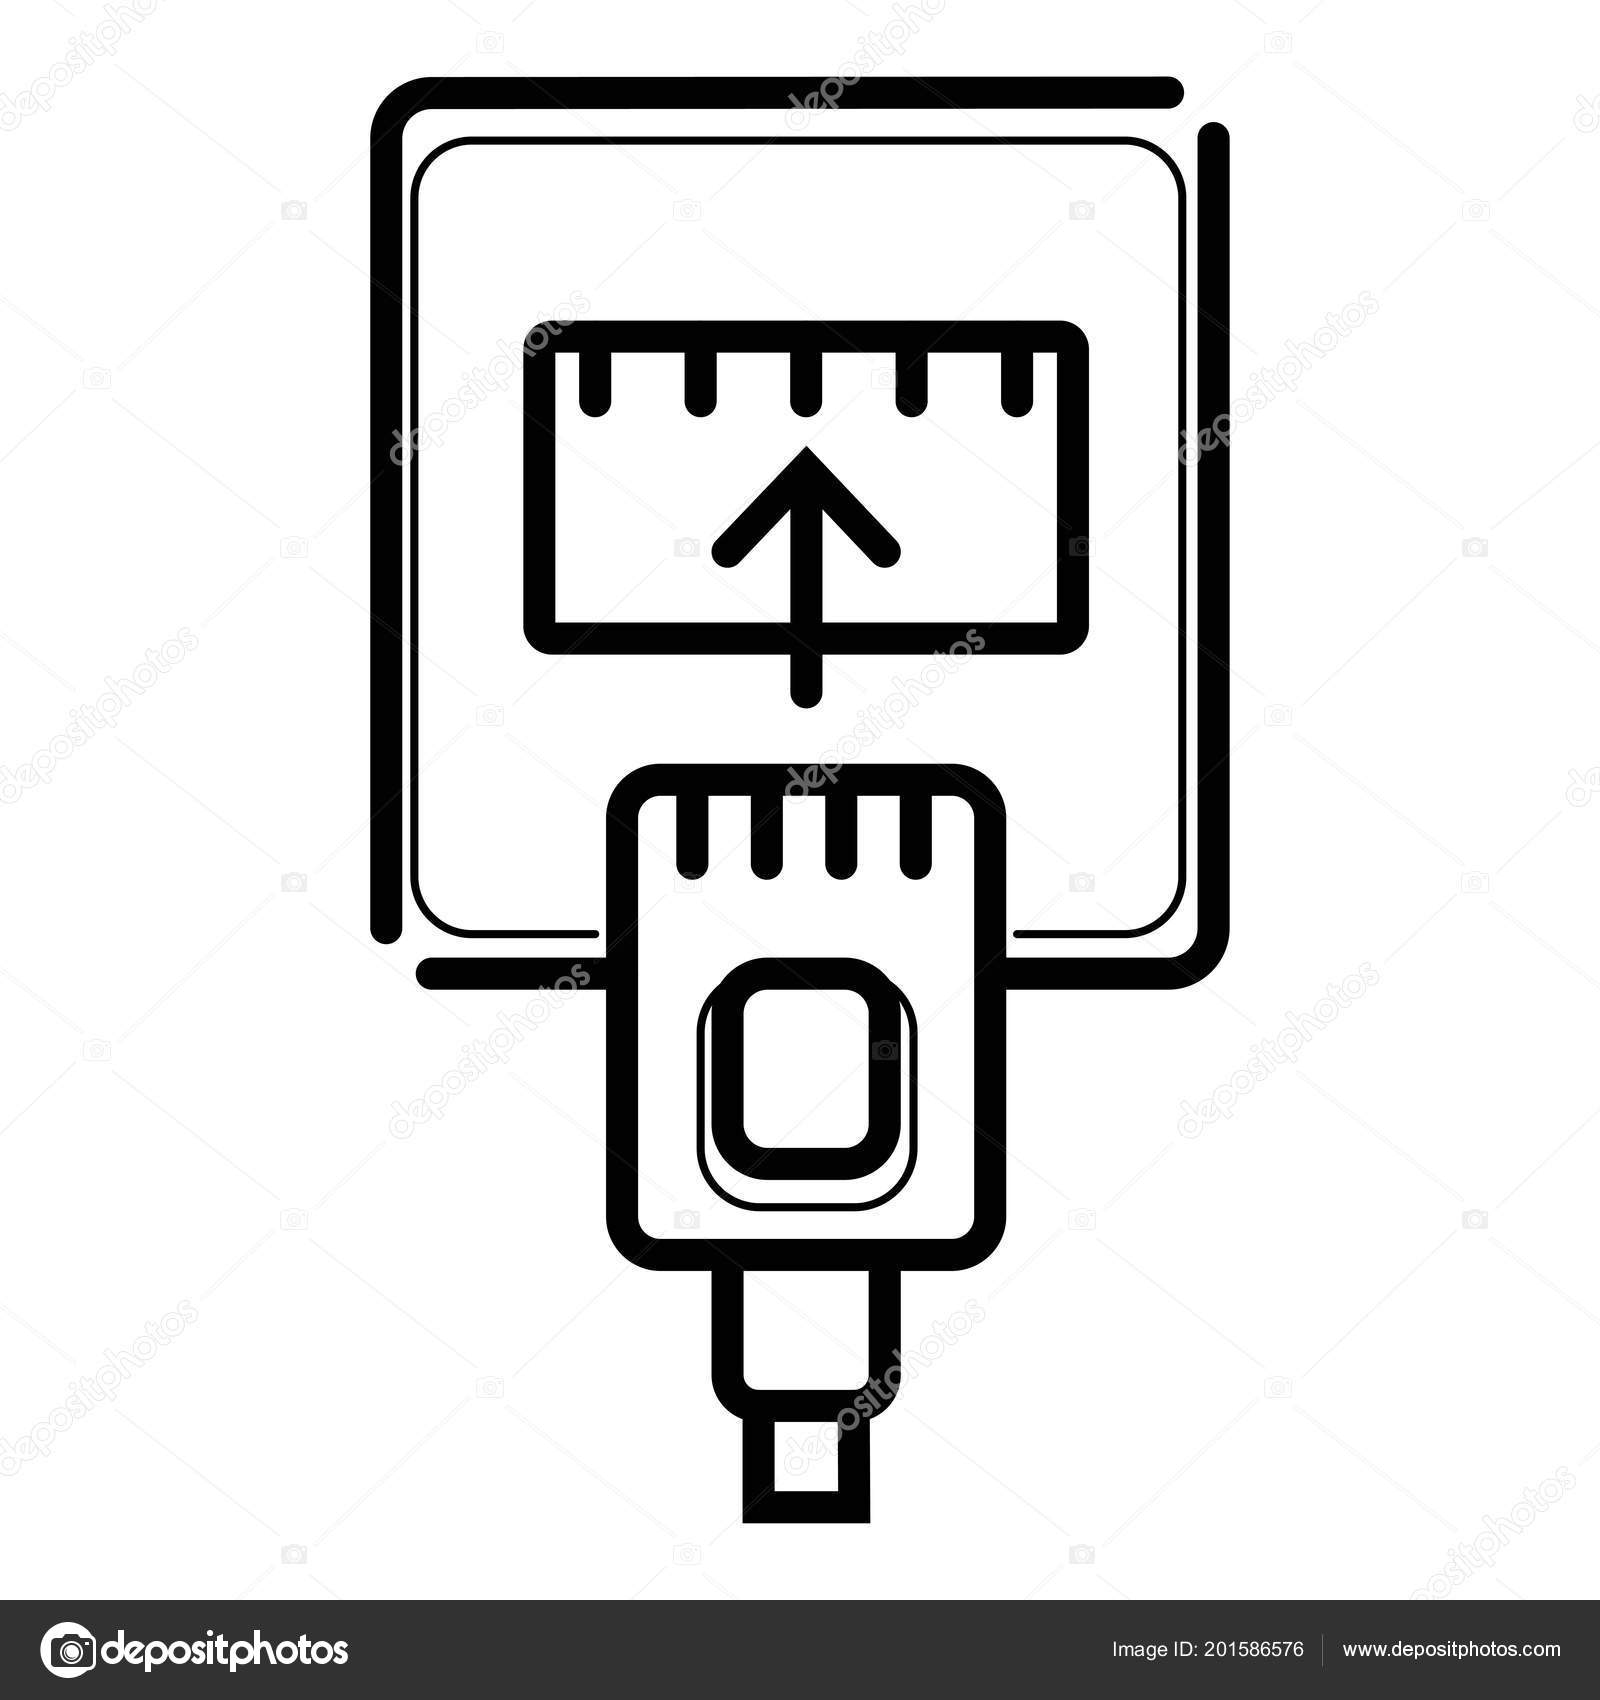 hight resolution of ethernet cable port icon stock vector